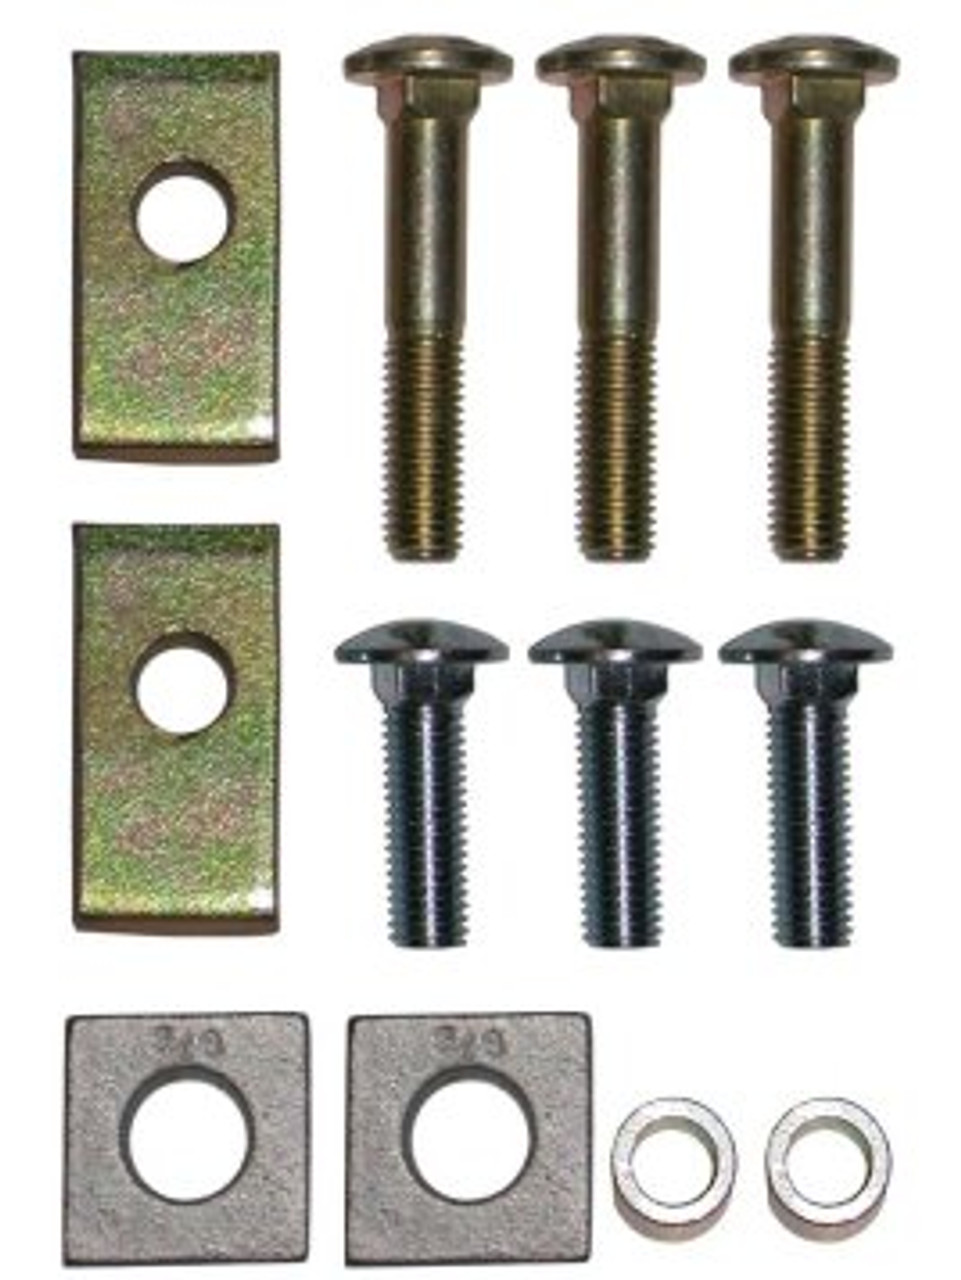 58309 --- 5th Wheel Trailer Hitch Spacer Kit for 2007-2019 Toyota Tundra - Required Kit for Installation